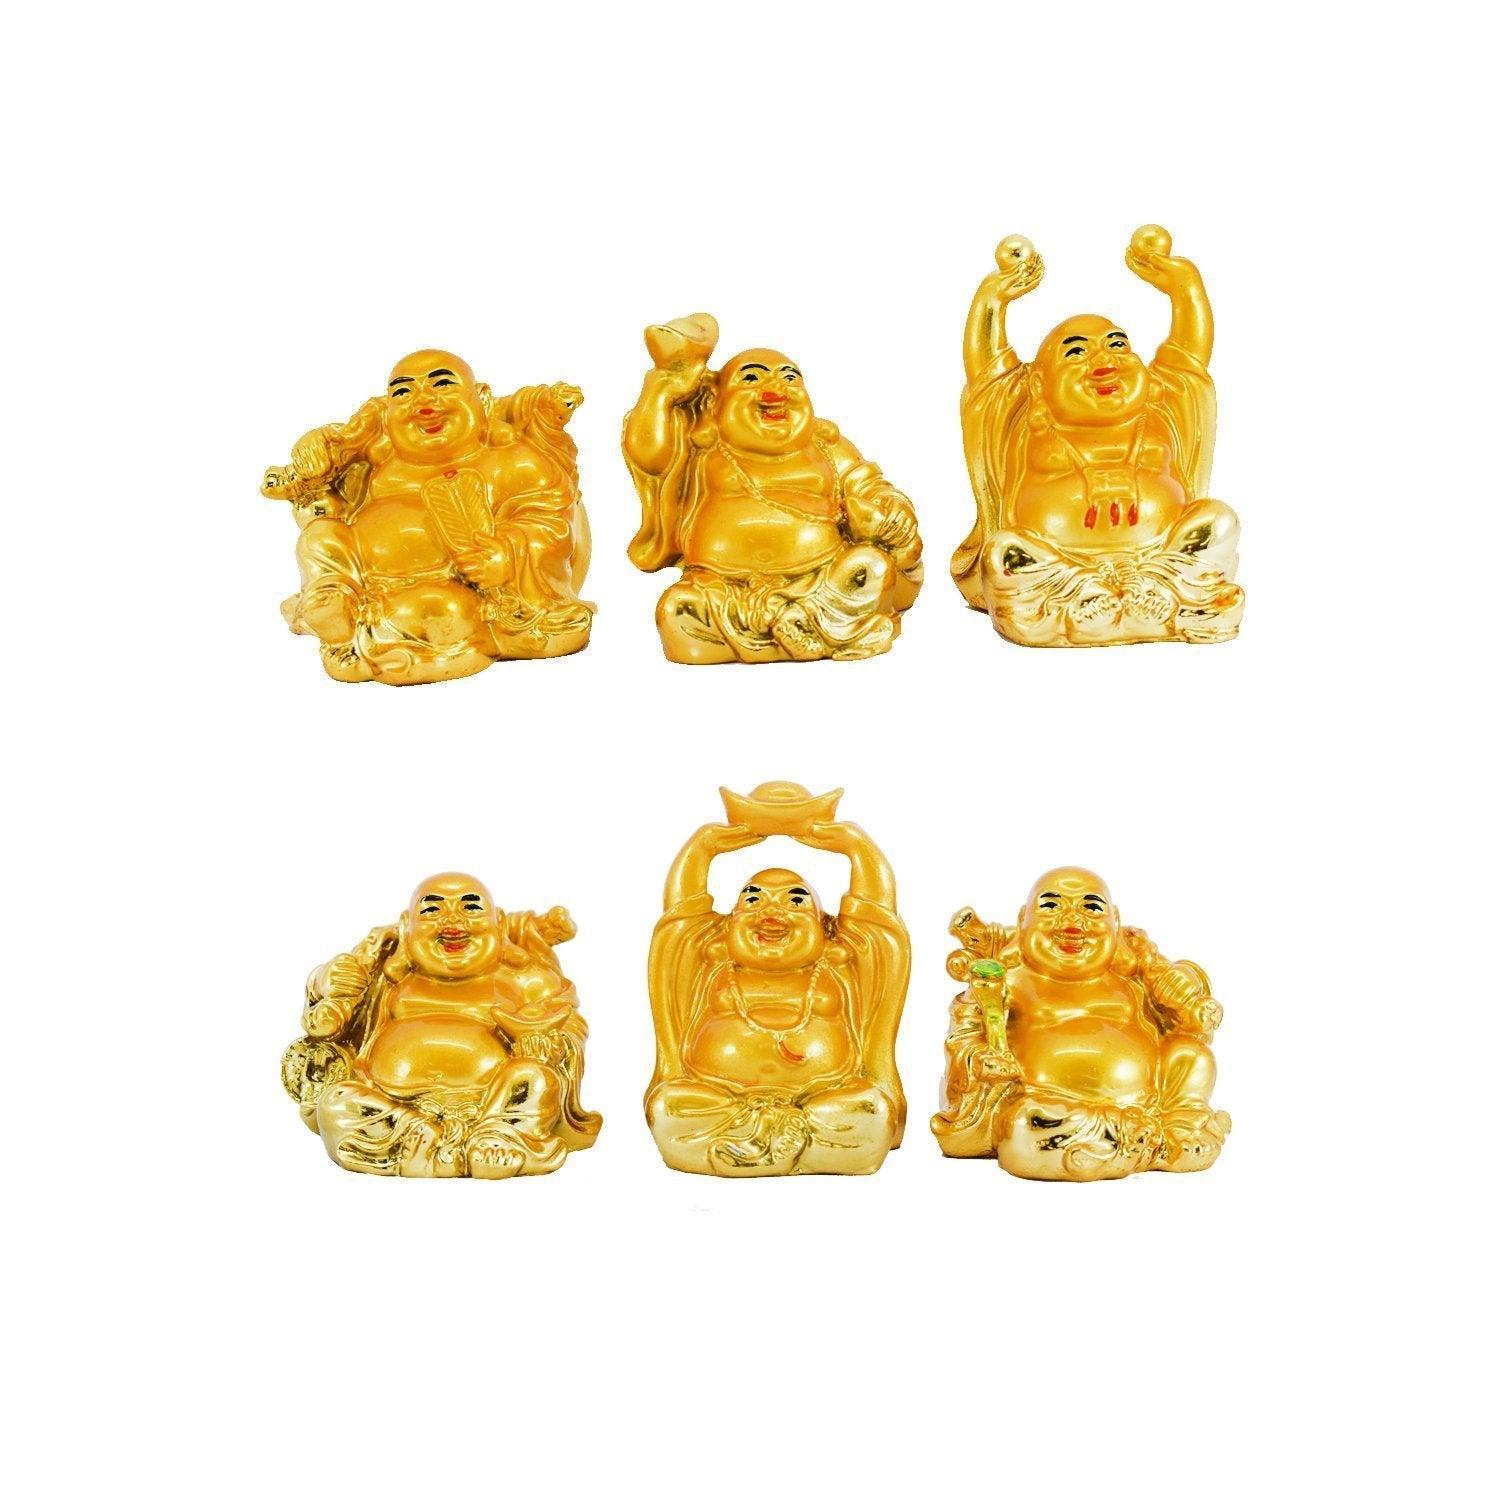 Feng Shui Chinese Happy Laughing Buddha Figurine Golden Statue Gift Showpiece (Set of 6) - Bagaholics Gift